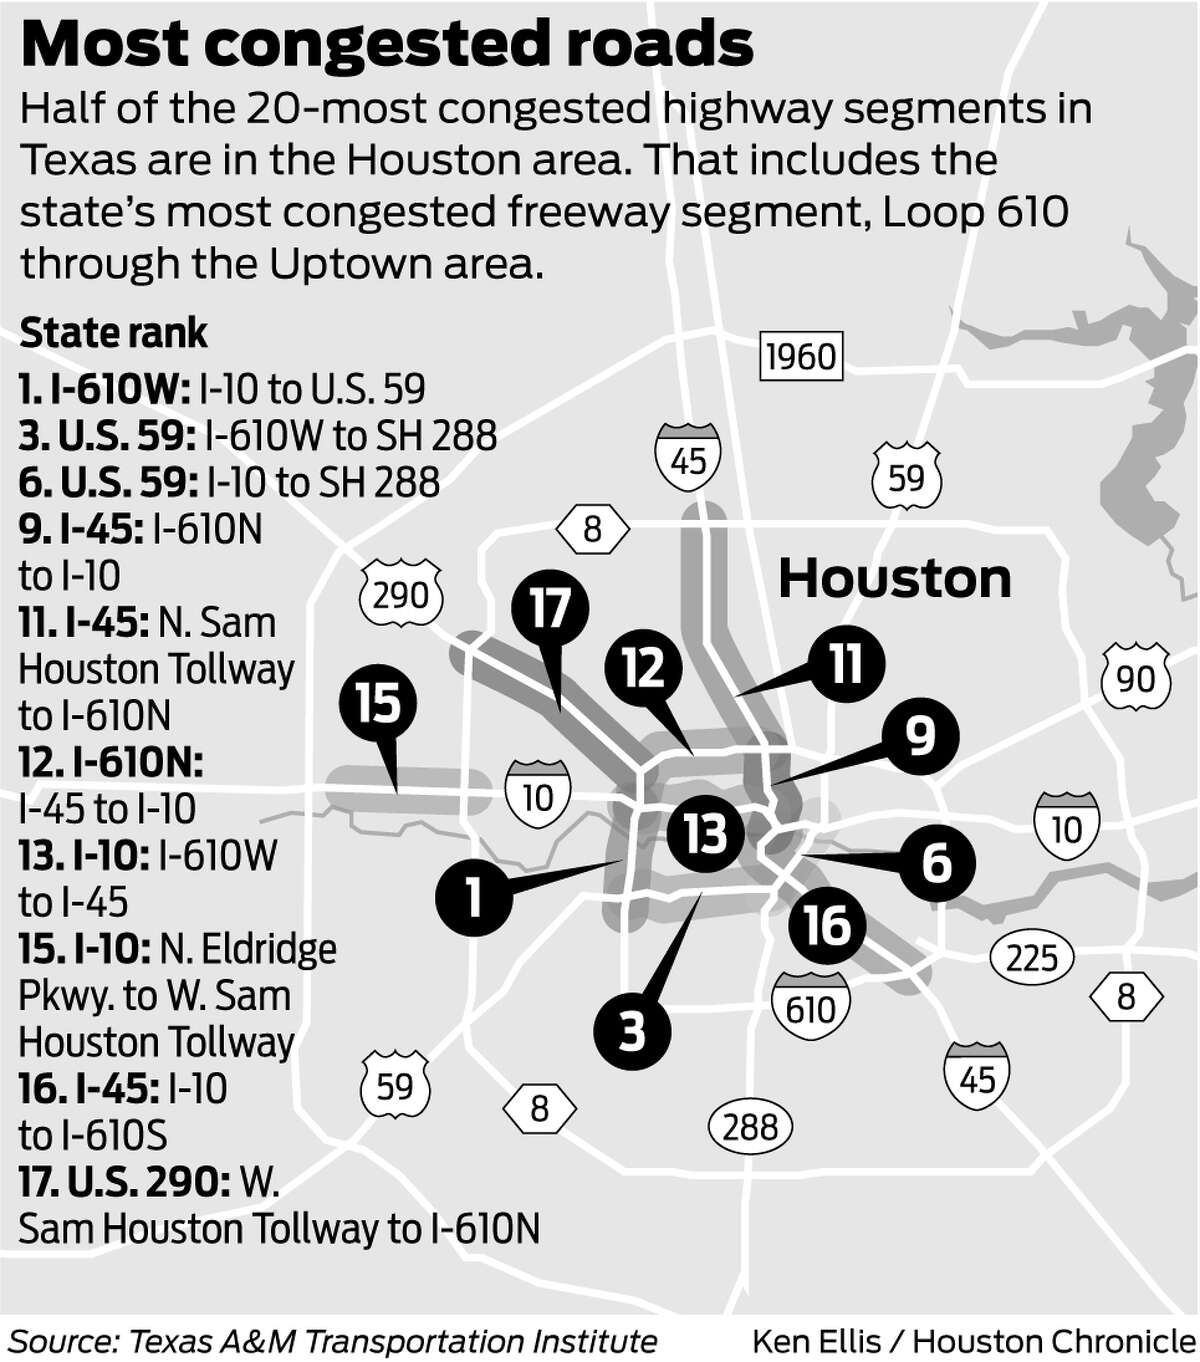 Of Houston's 10 most congested freeway segments, listed below, the top four also are included among the state's most congested list.